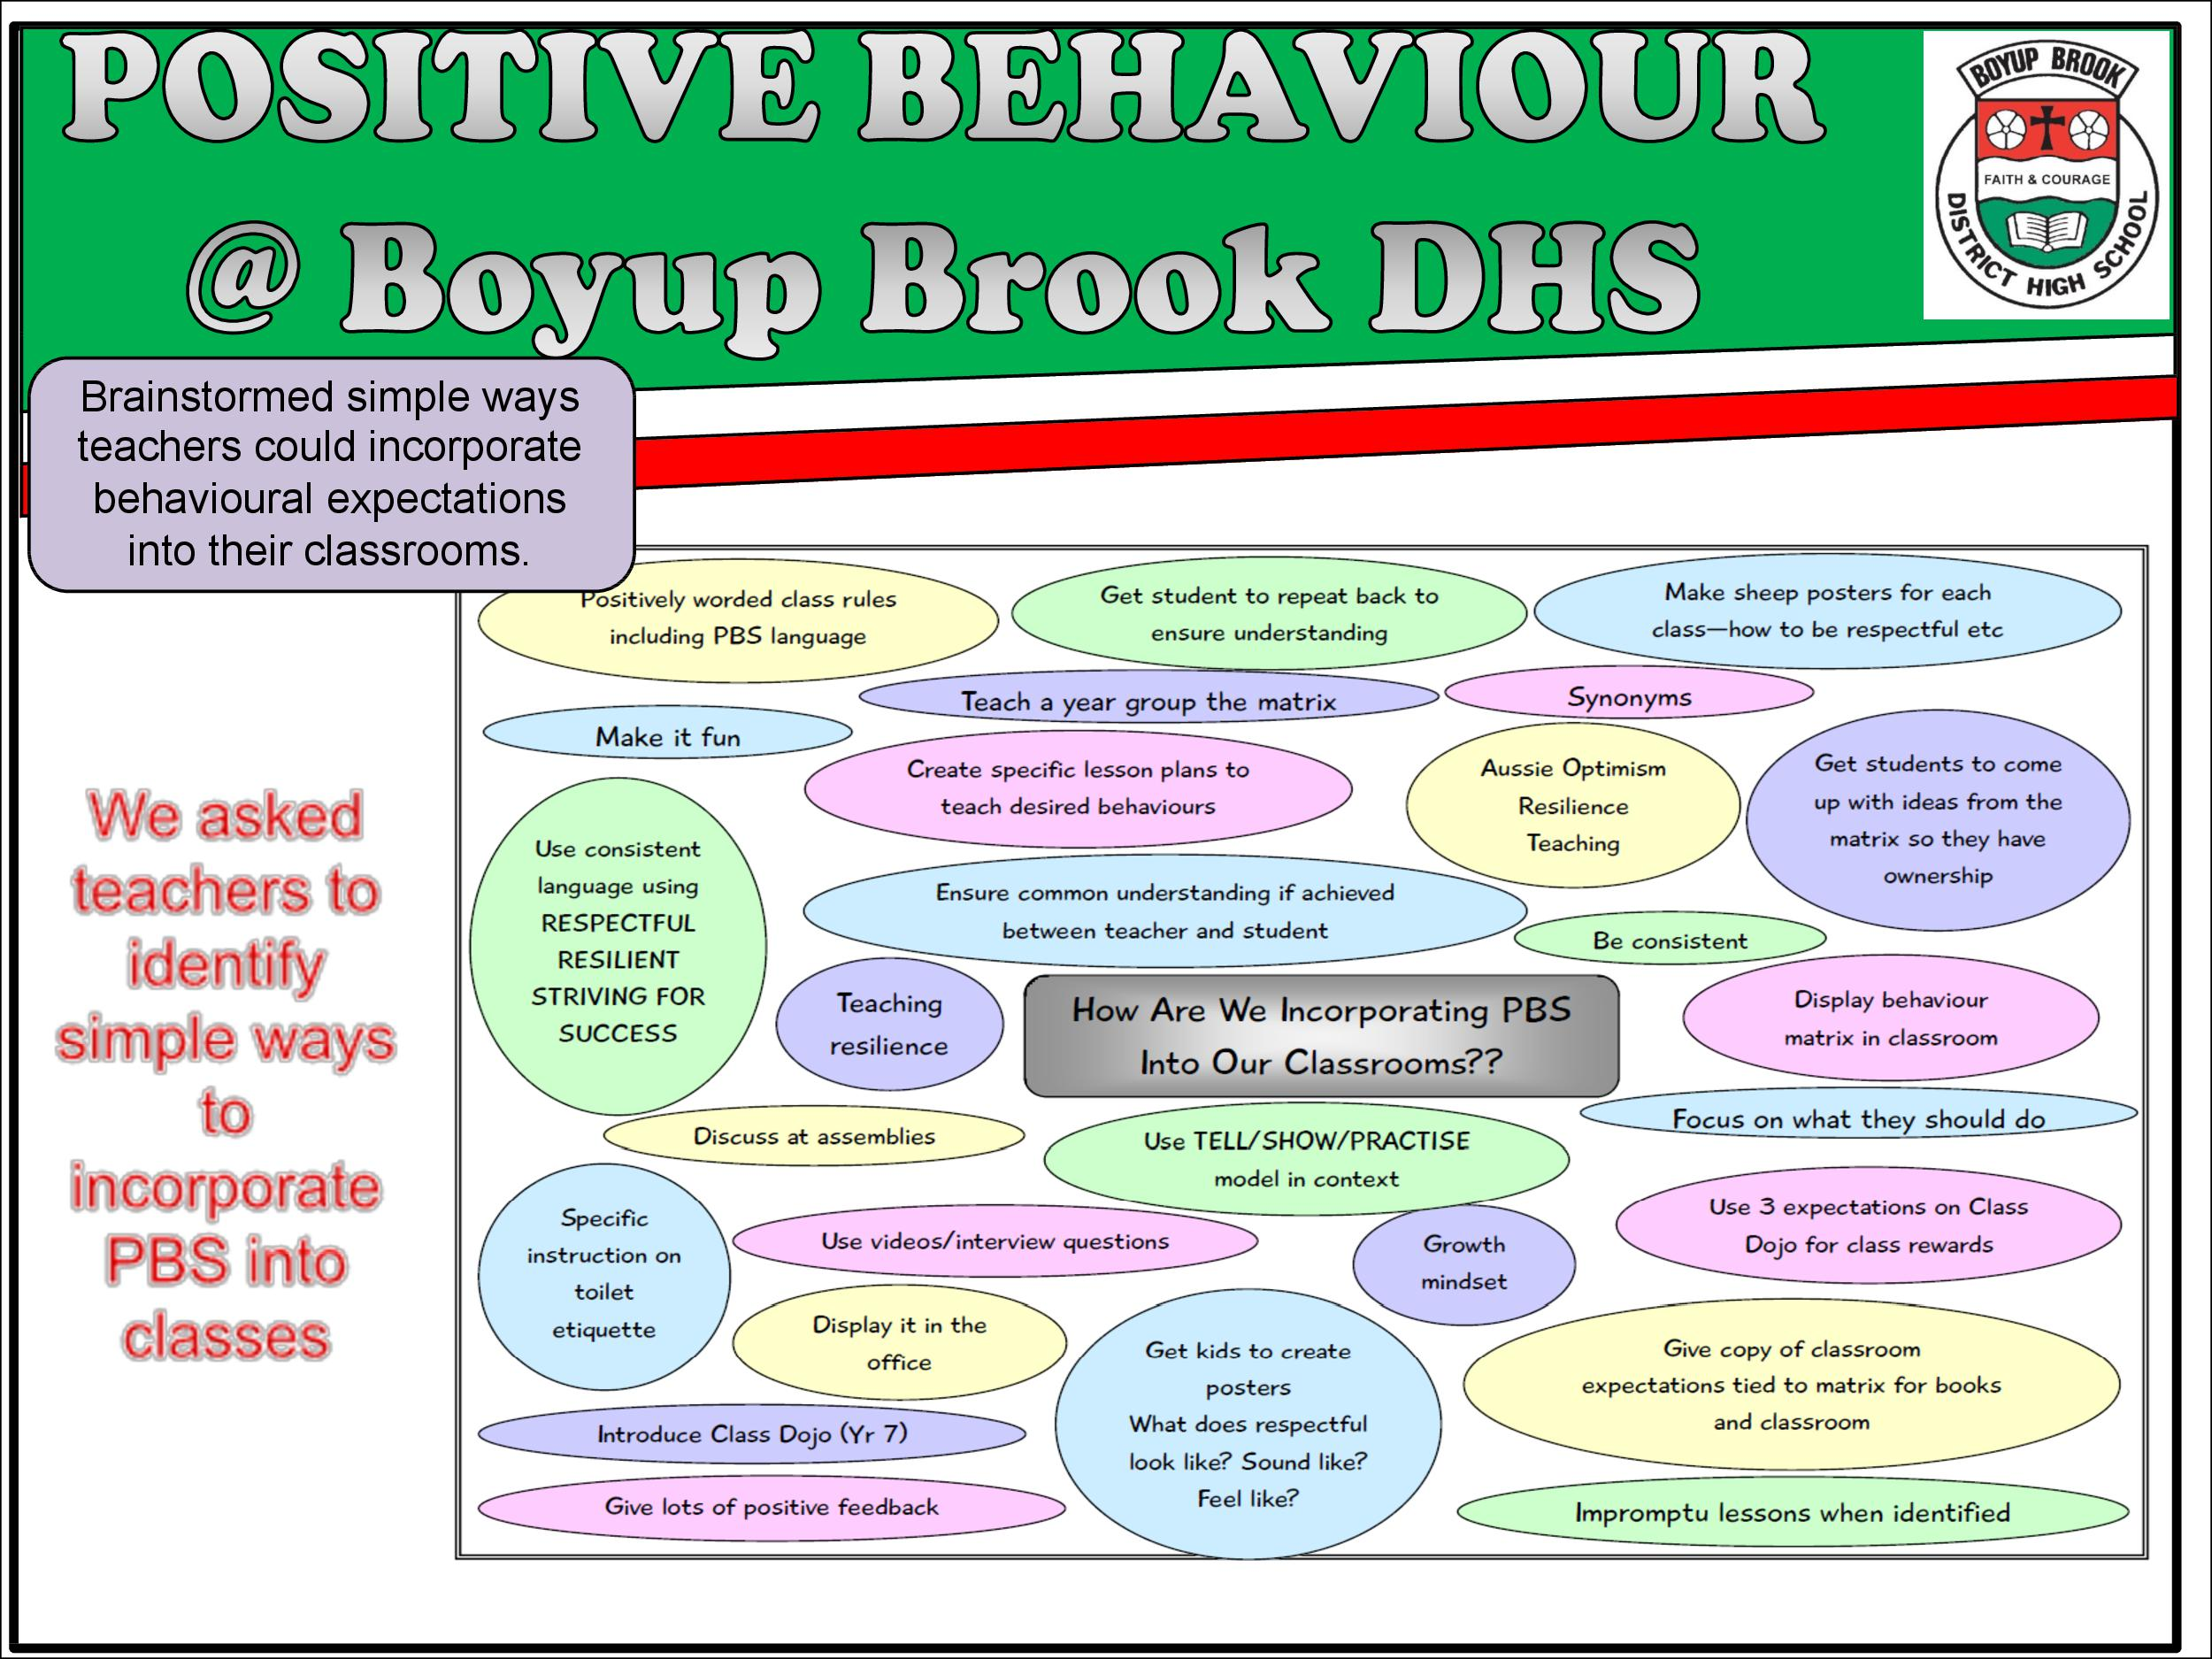 Positive Behaviour Support Page 15